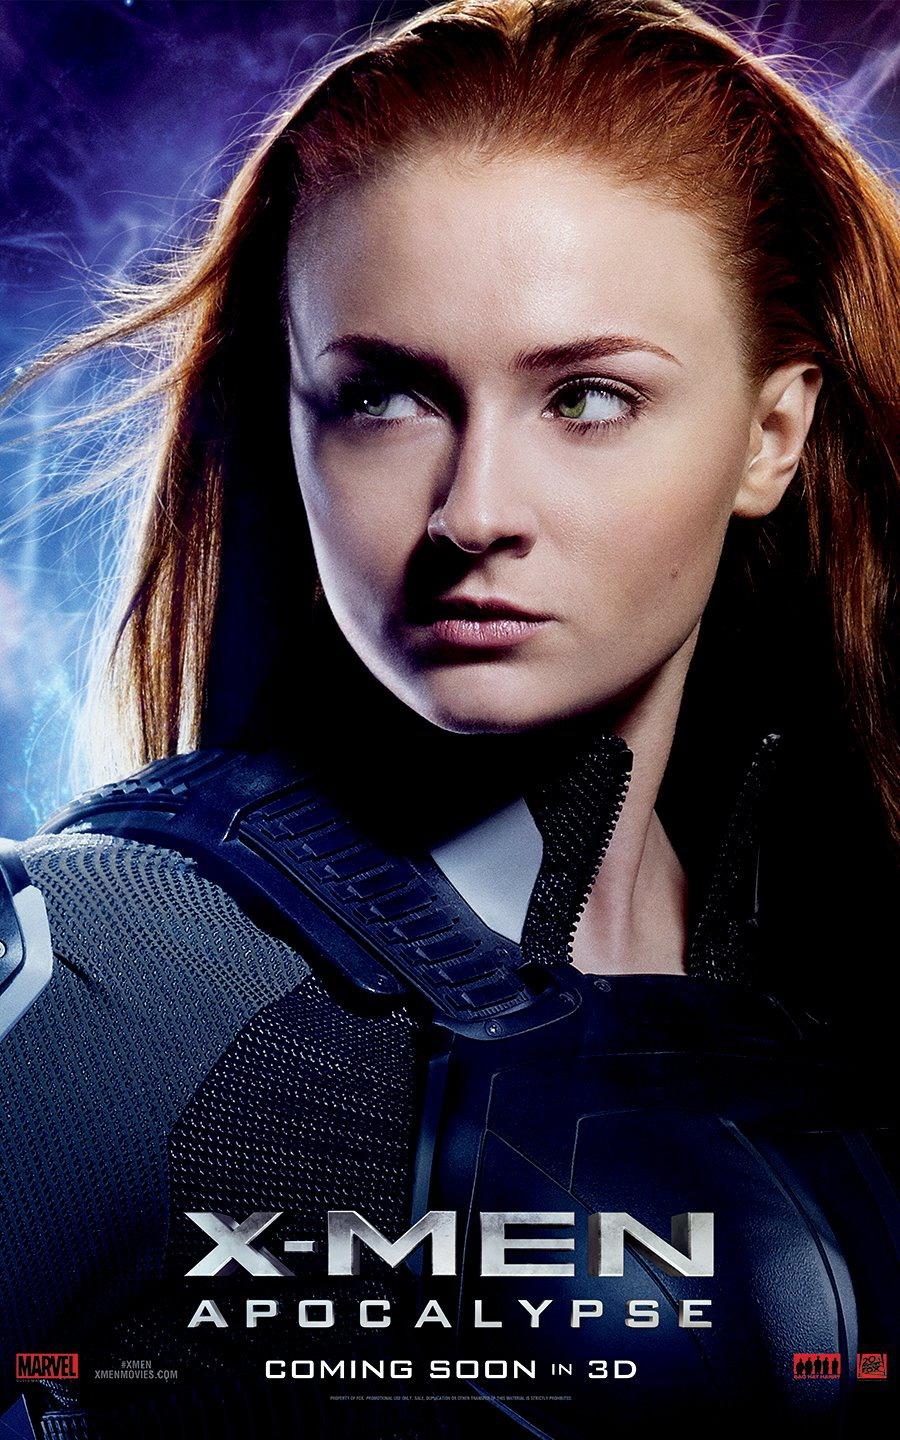 10 New X-MEN: APOCALYPSE Character Posters | The ...